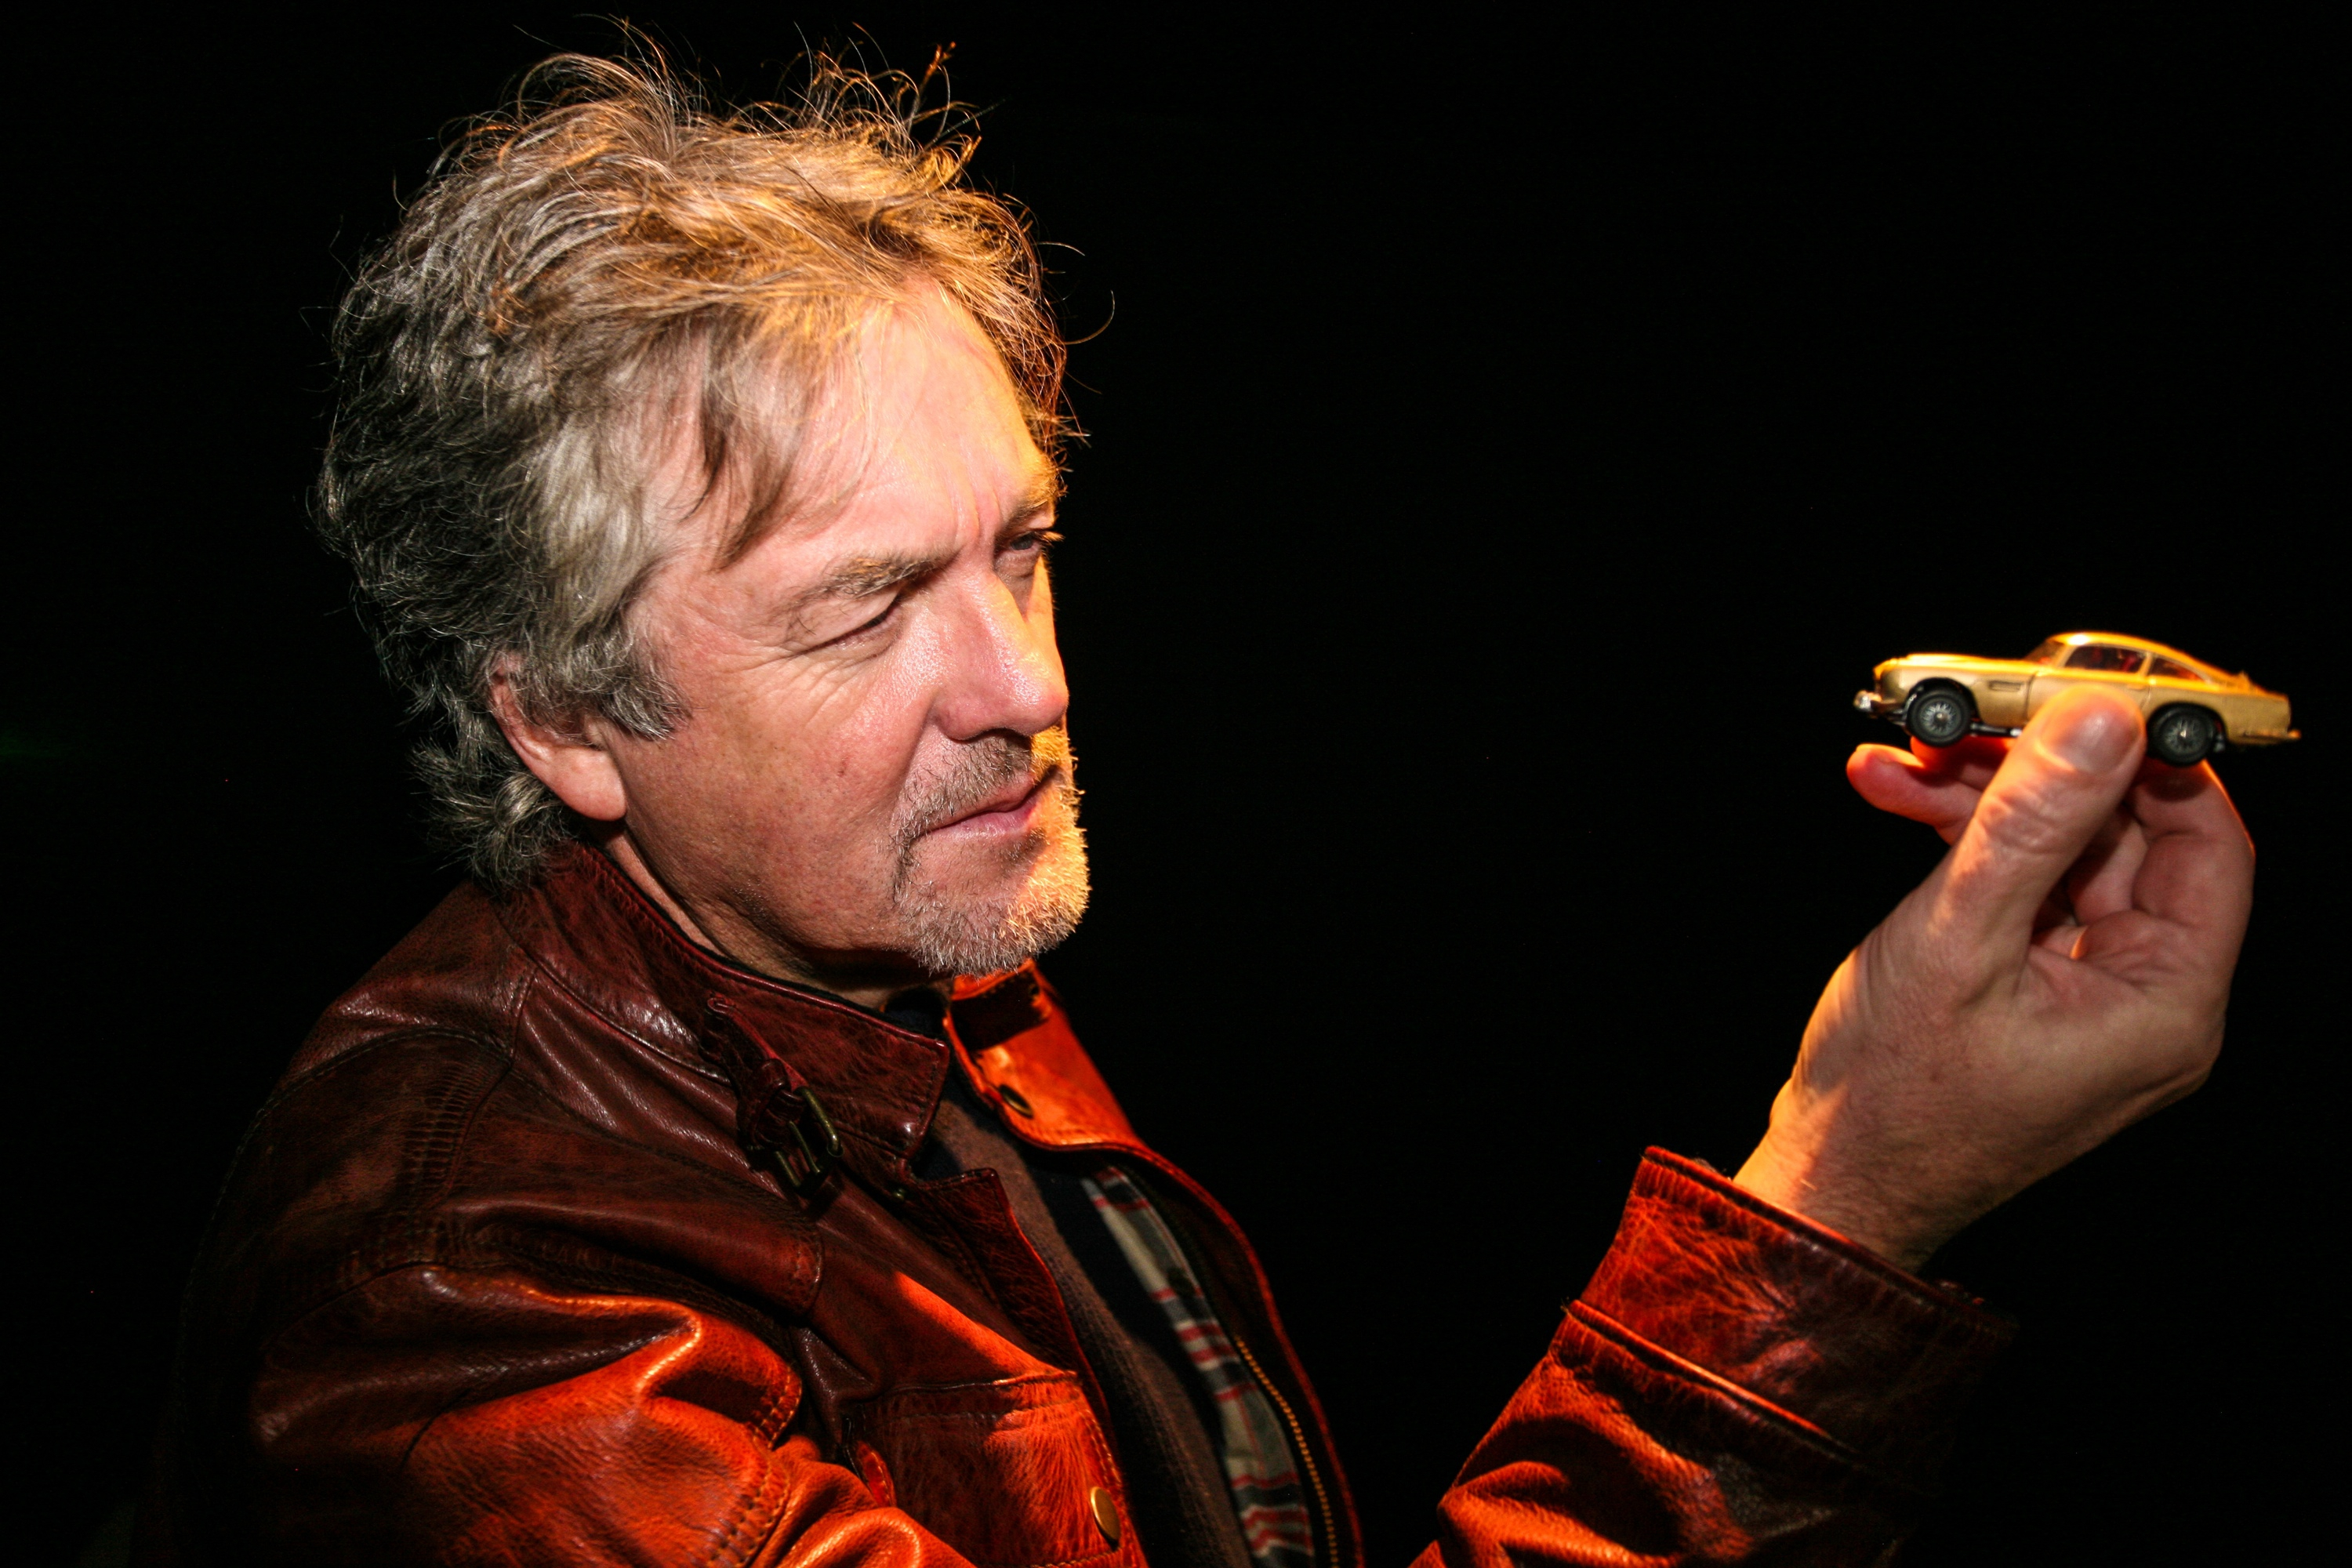 James May Images